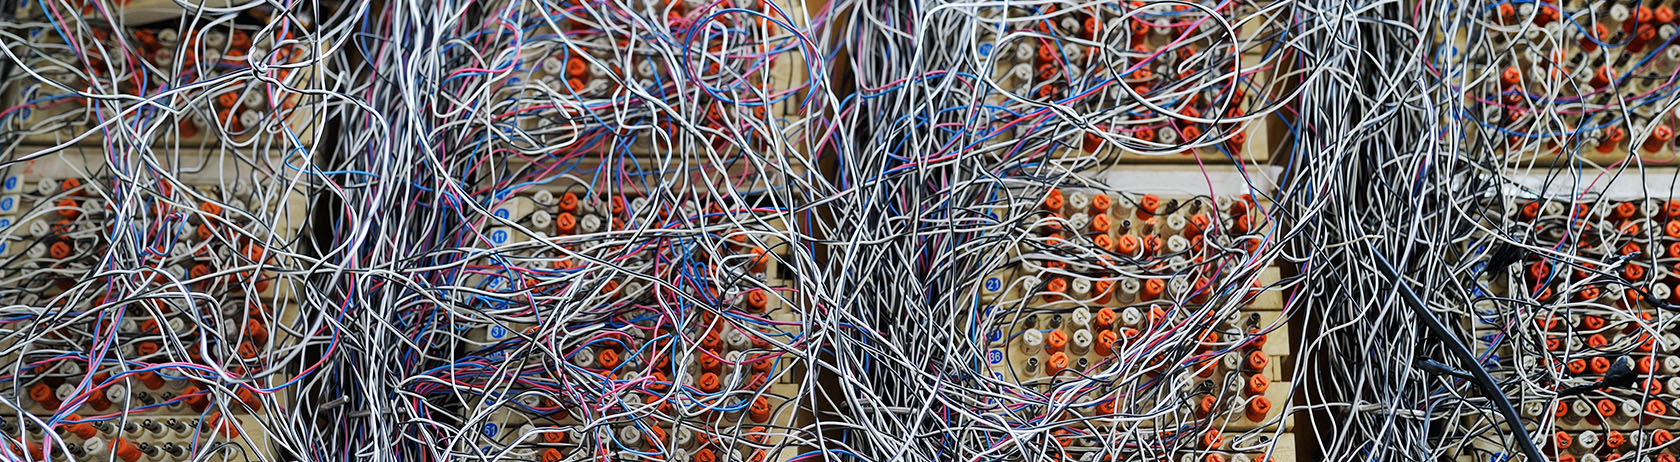 Swell Cable Management Is Essential To Avoid Air Damming Knowledge Wiring Cloud Usnesfoxcilixyz